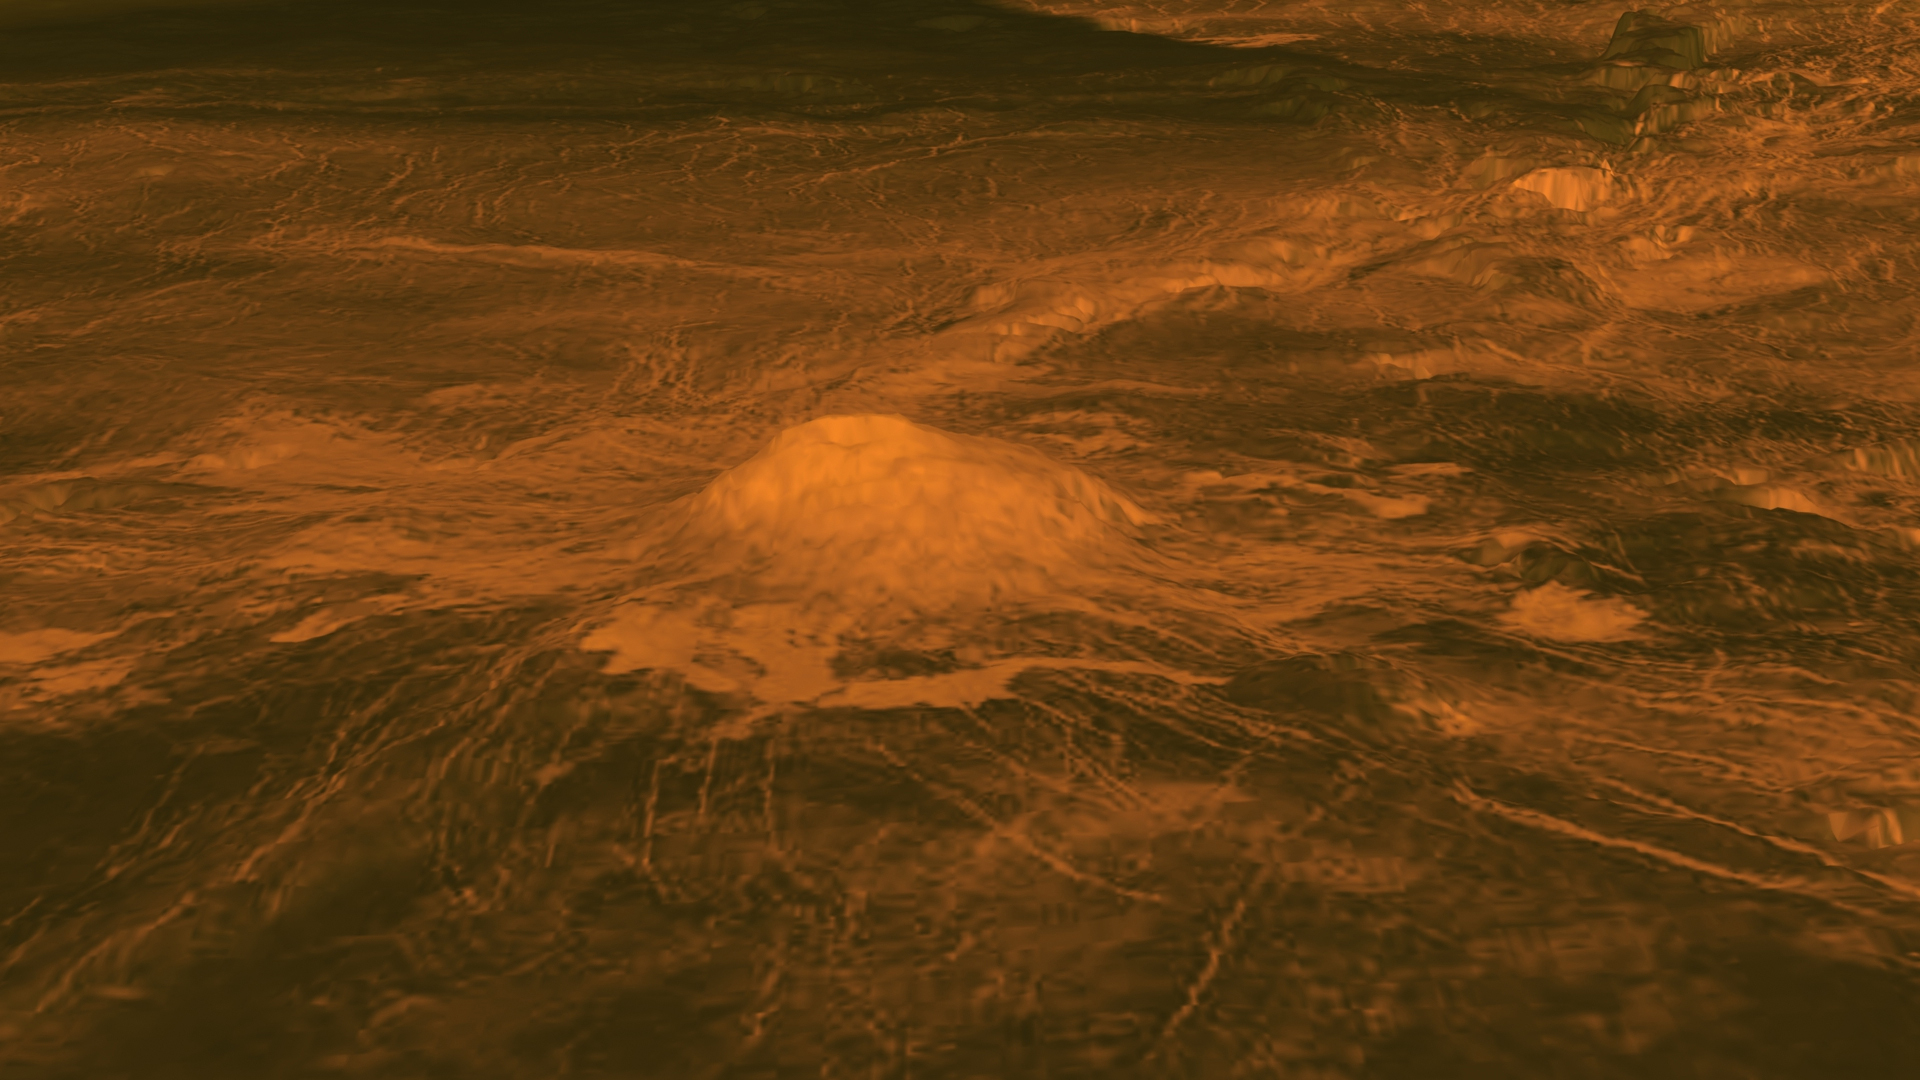 Prospect of life on Venus propels interest in robotic missions